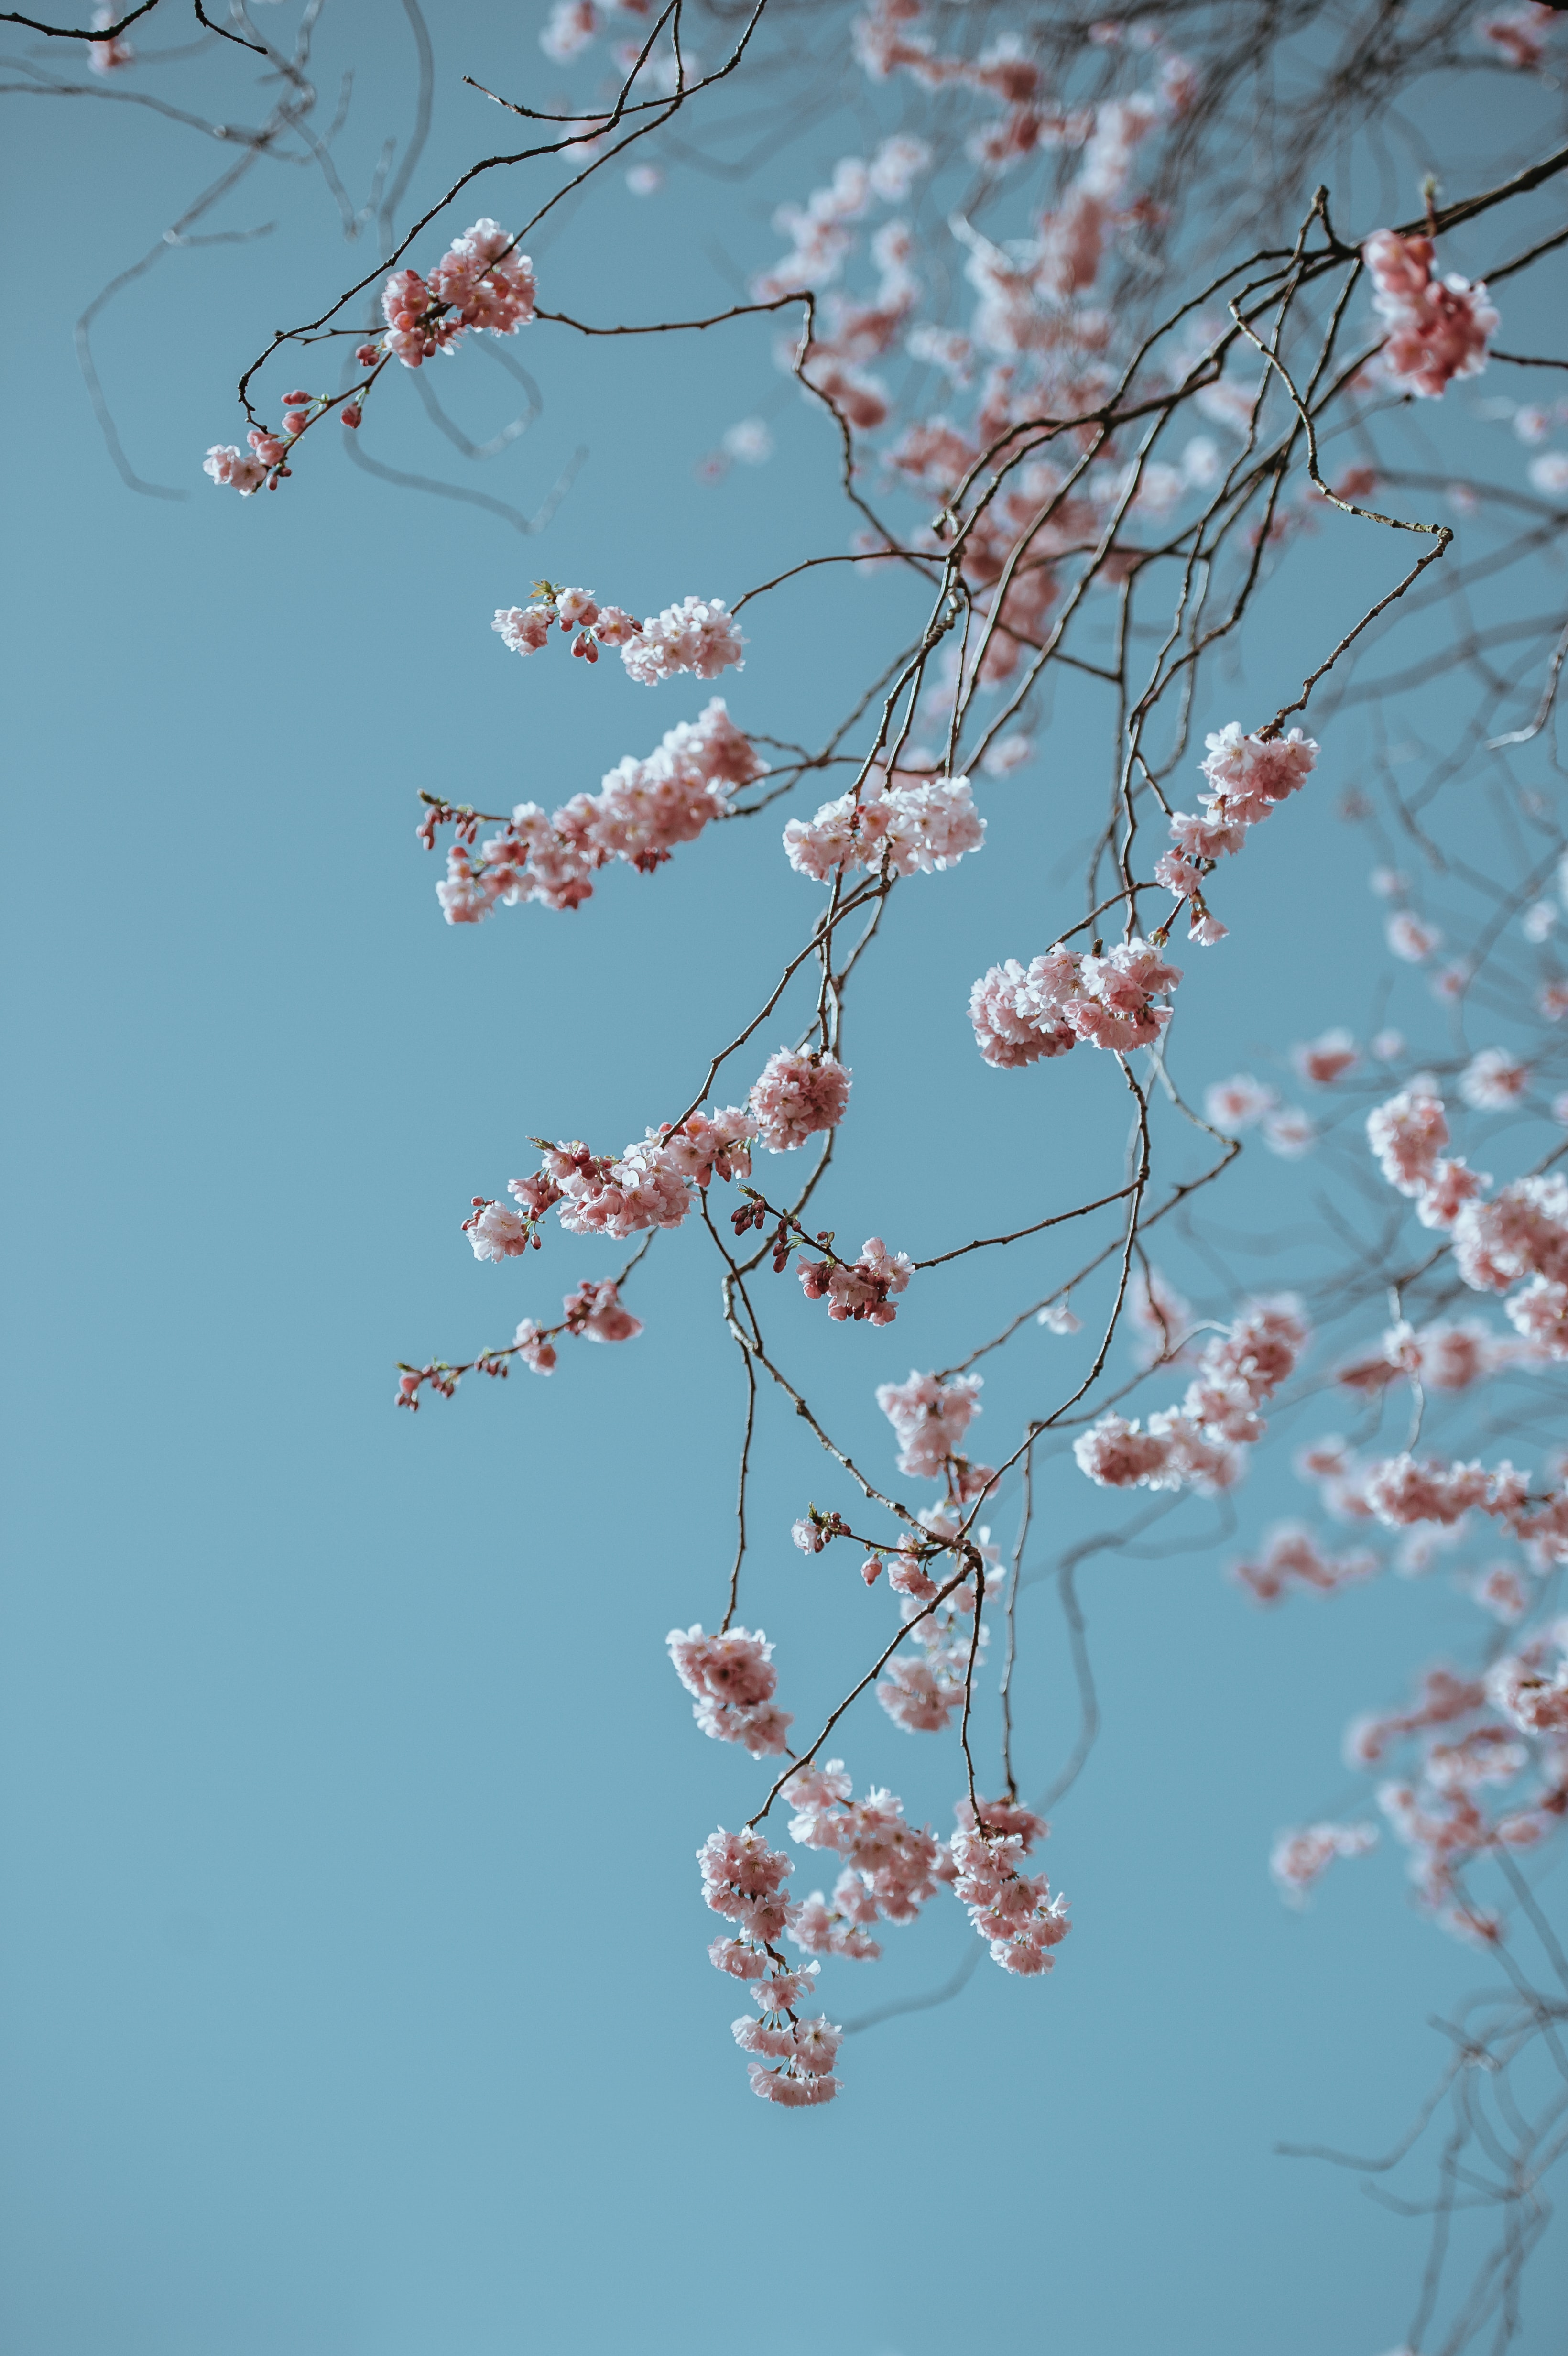 Branch with pink blossom against clear blue sky in Spring